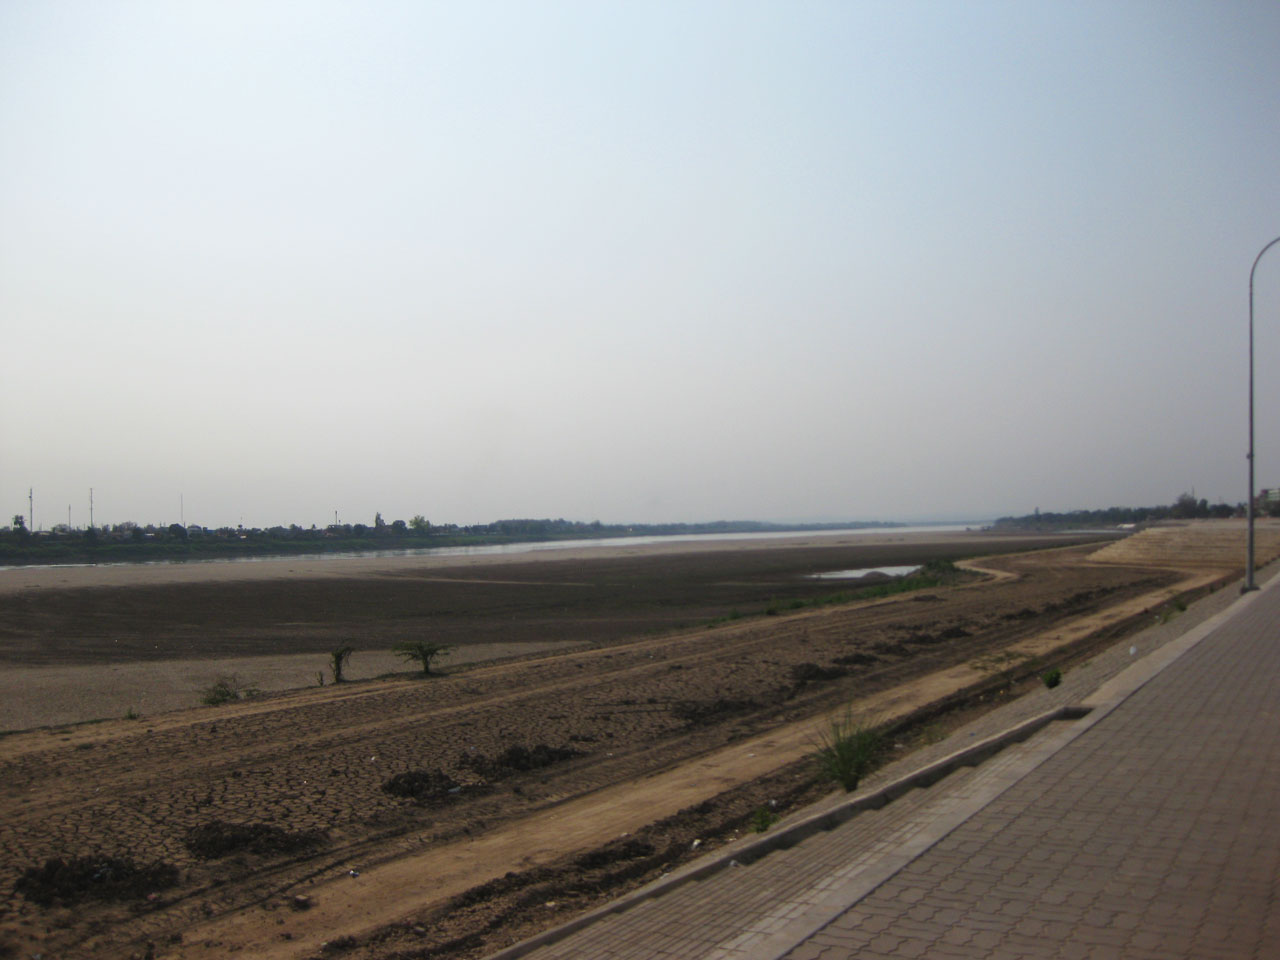 The Mekong river in Vientiane, marking the border with Thailand